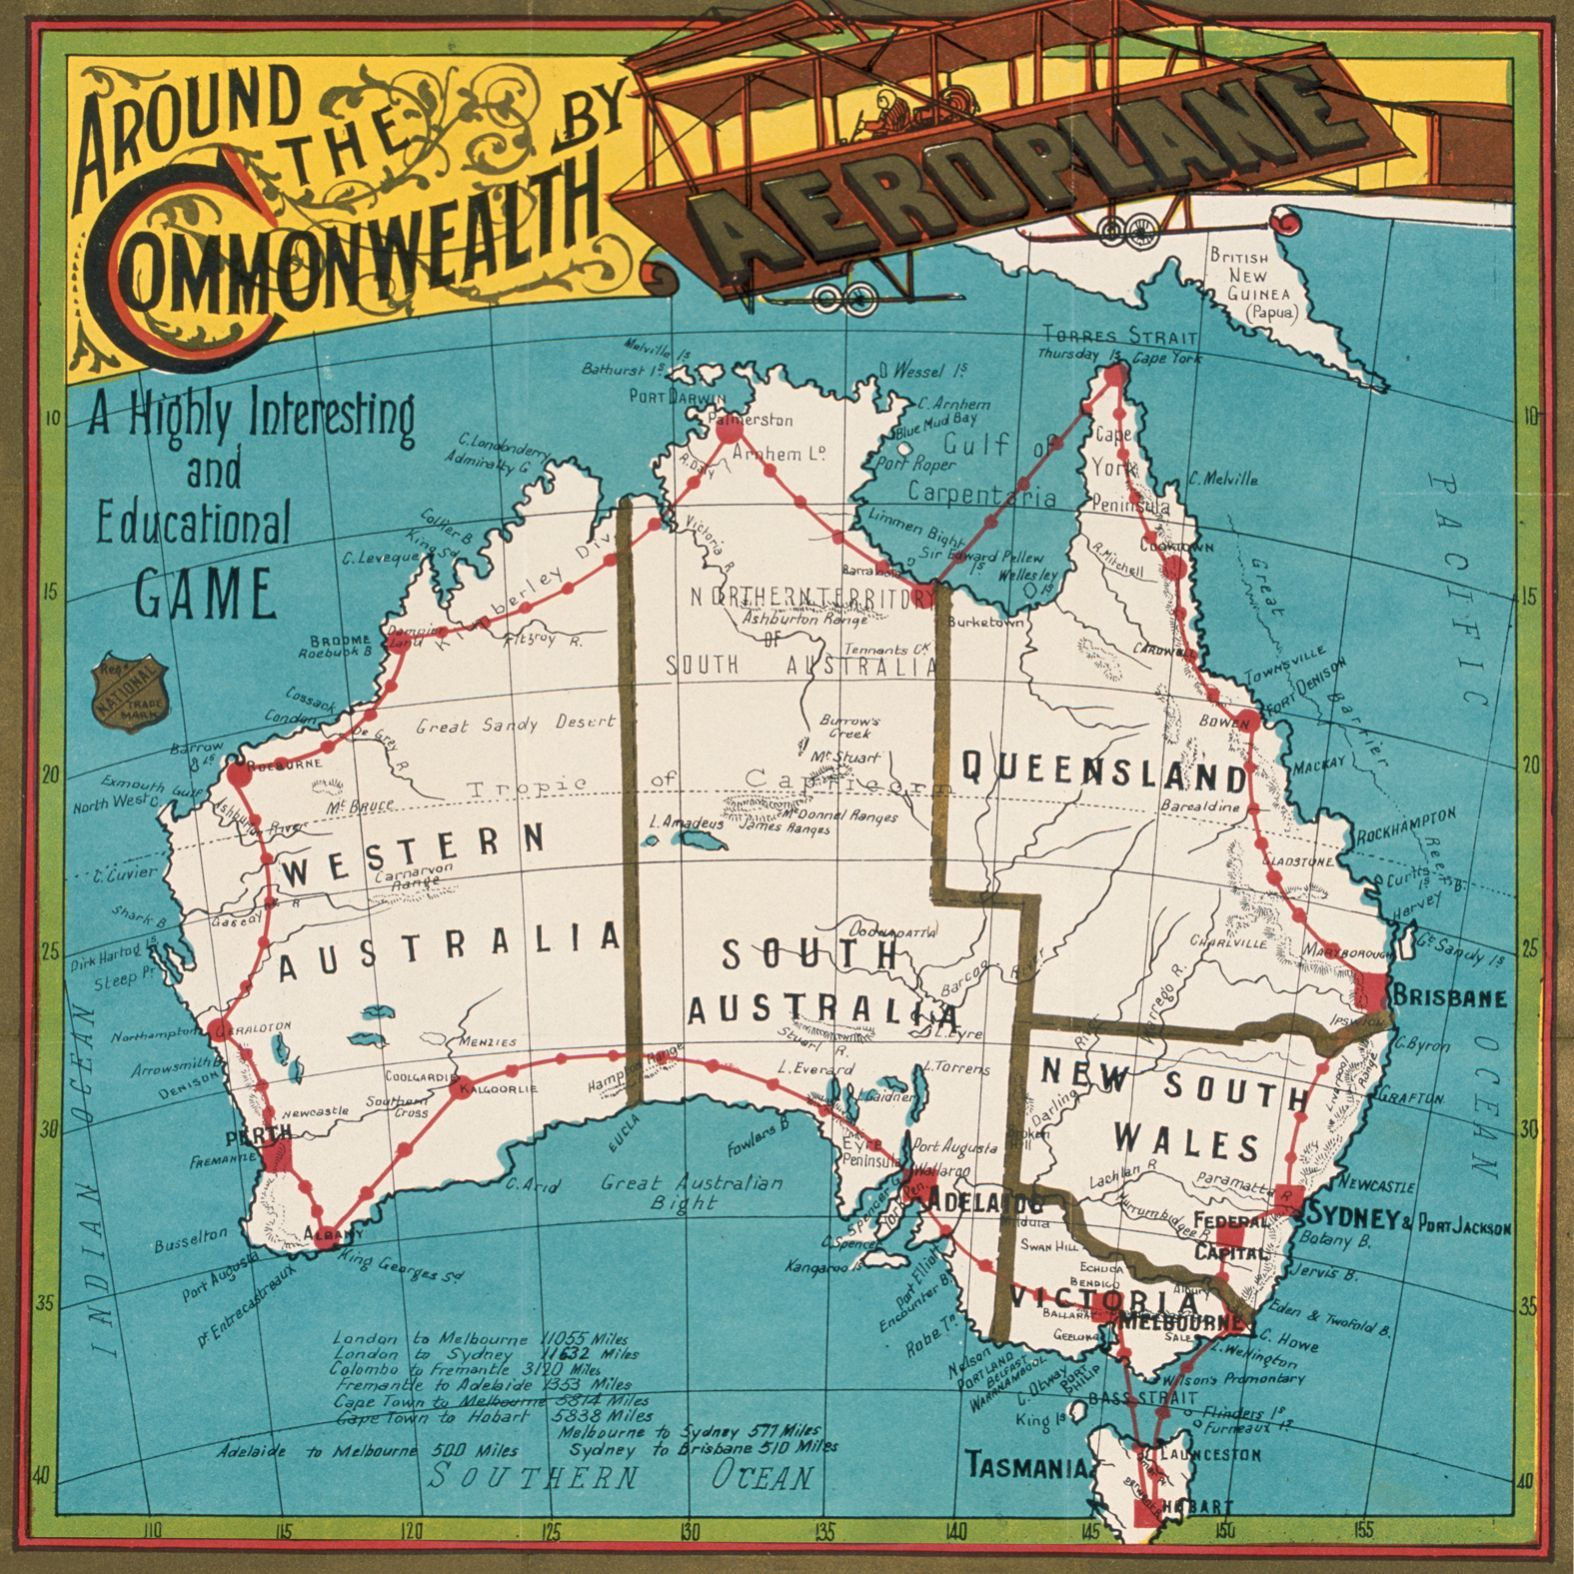 an eartly board game depicting australia